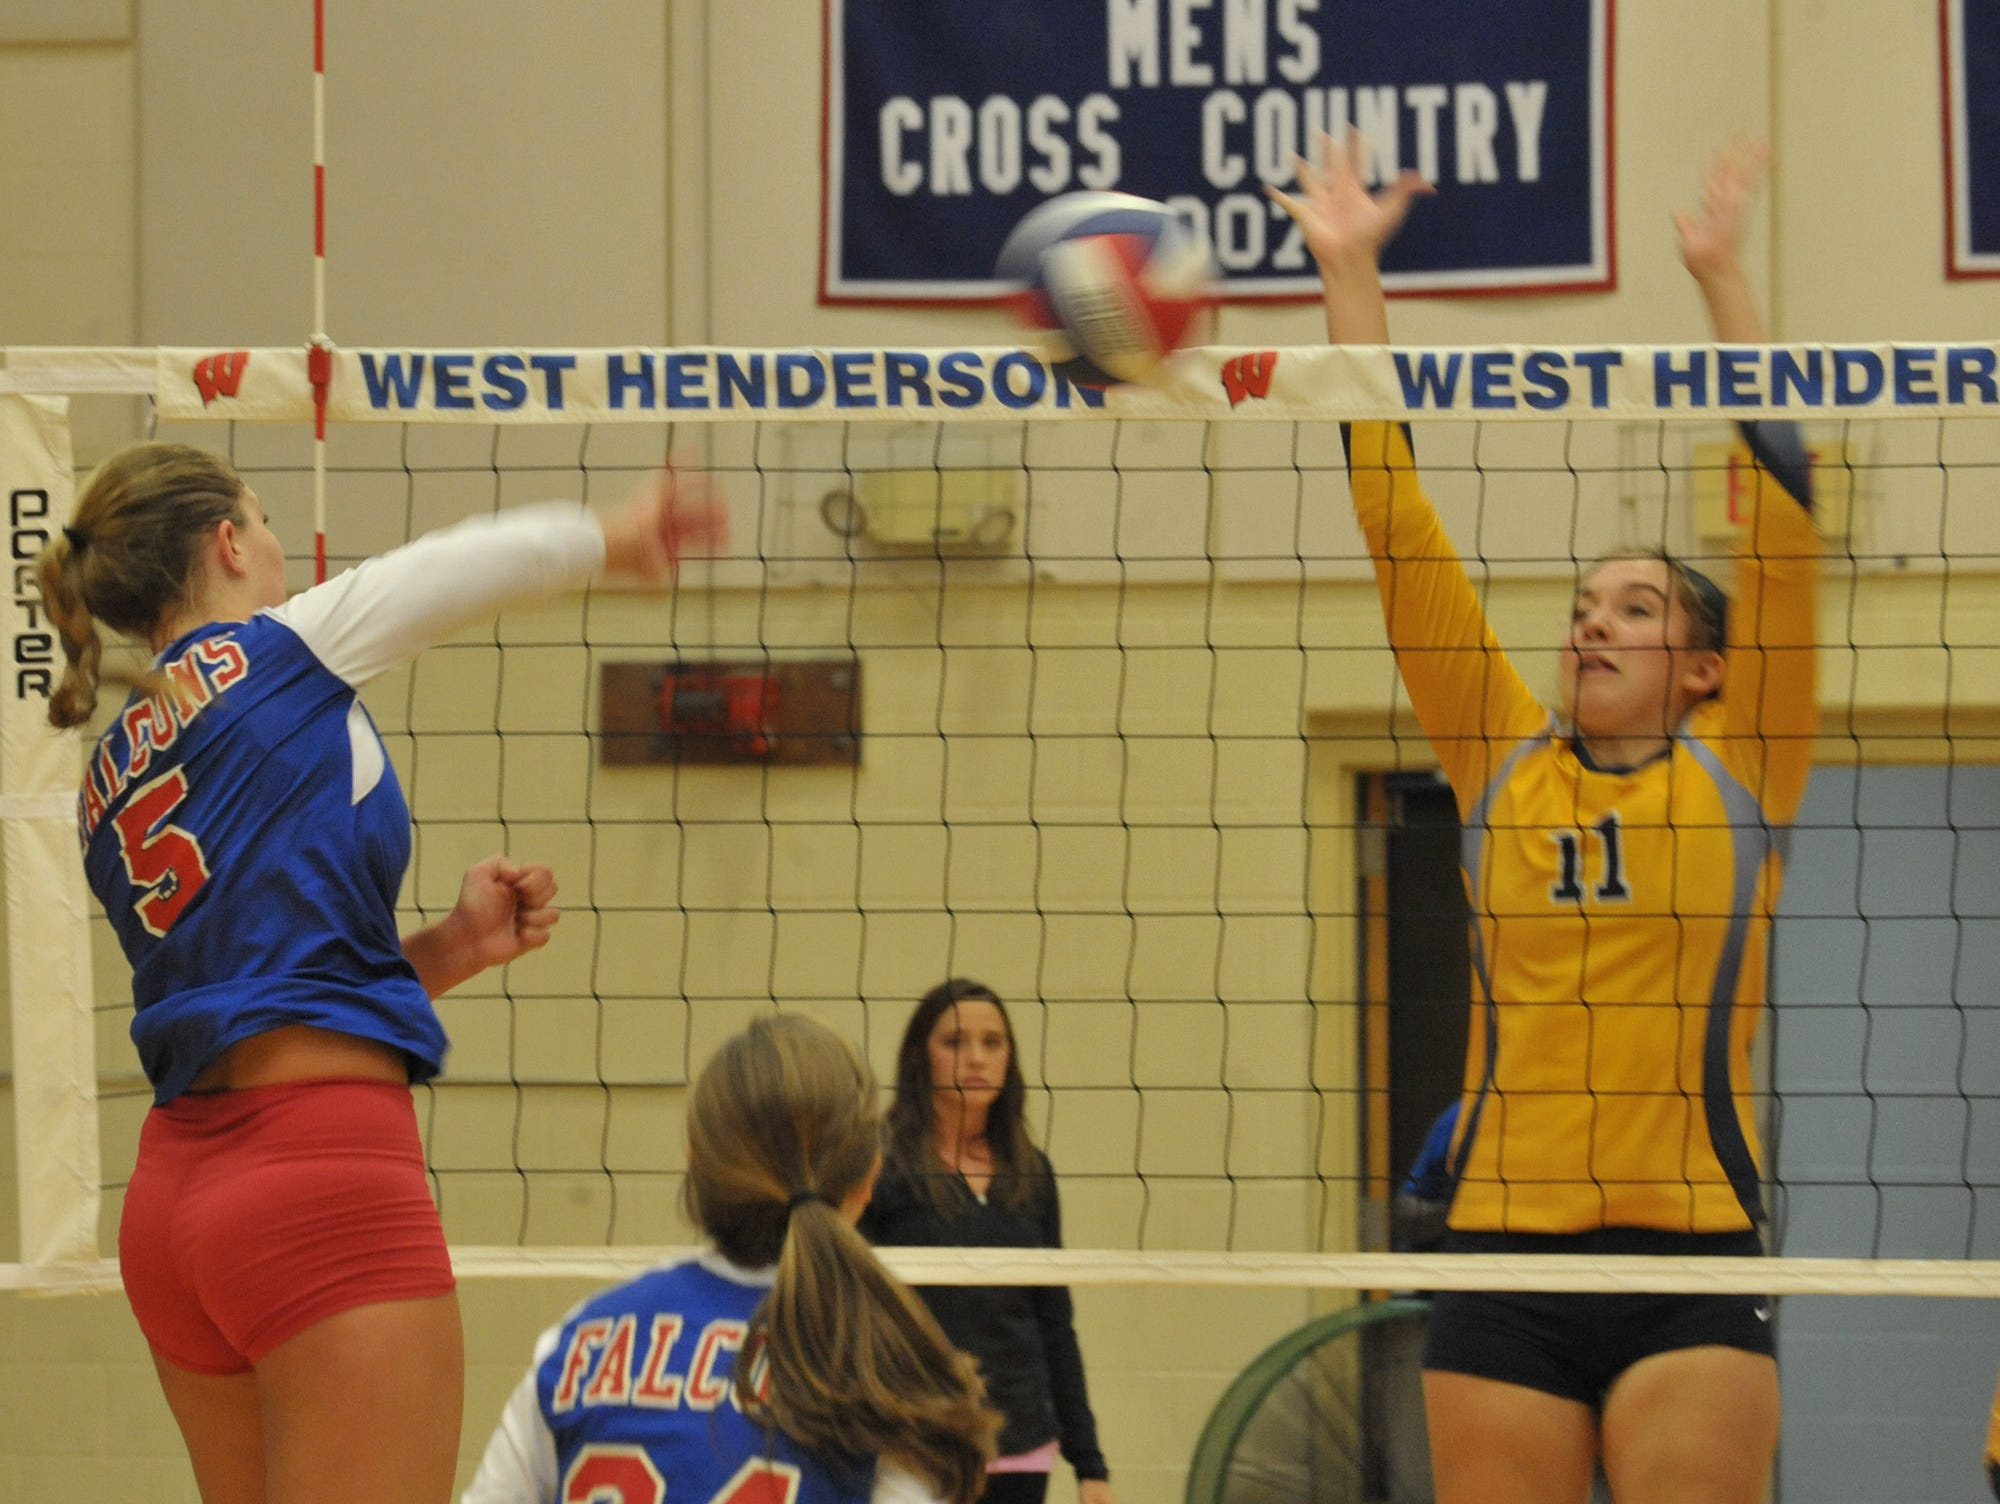 Reynolds will host a youth volleyball camp next week at the high school.